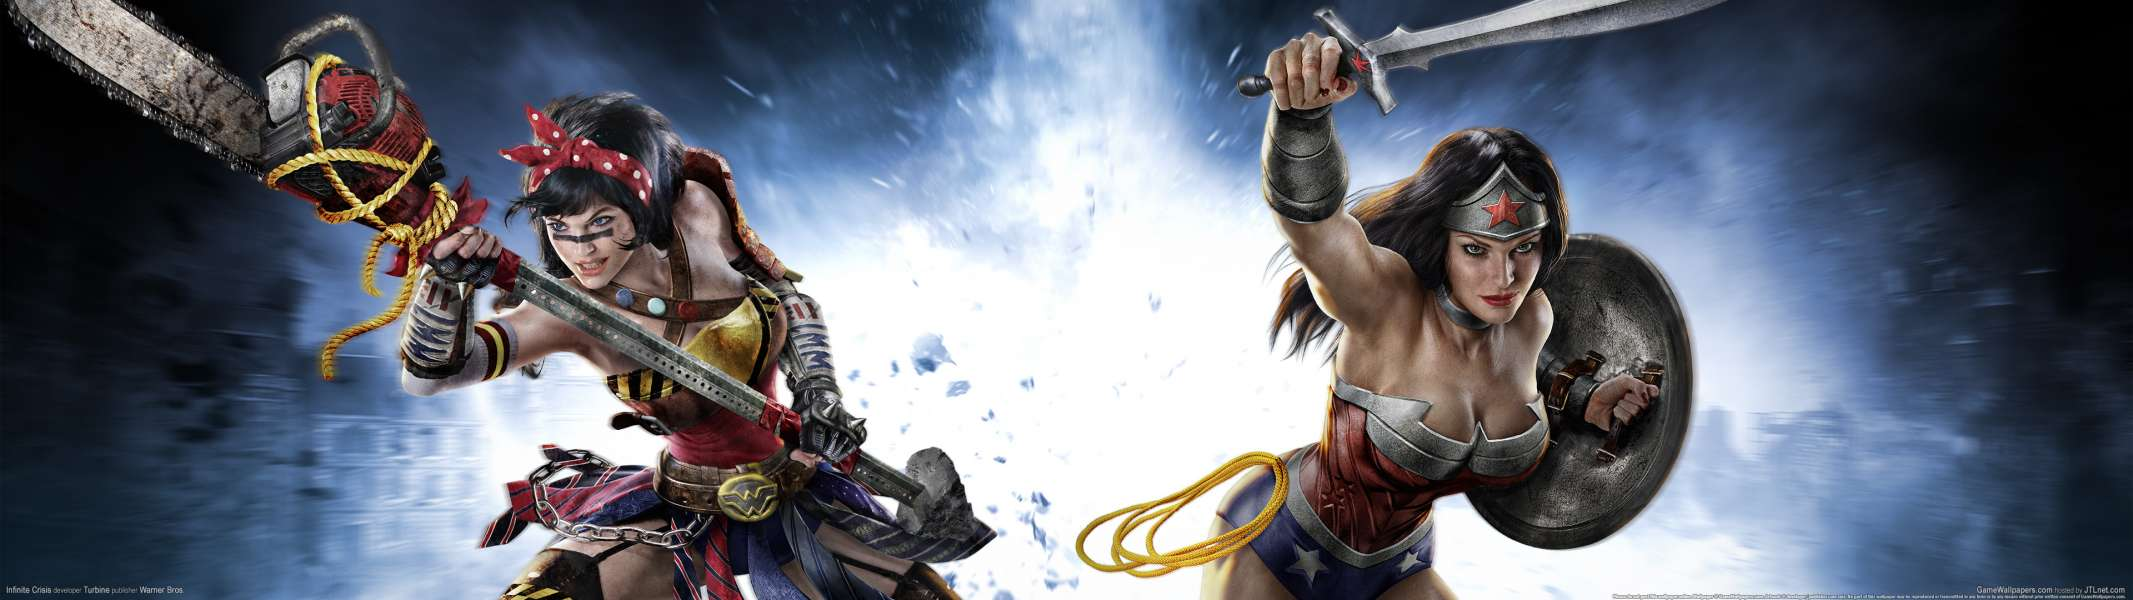 Infinite Crisis dual screen wallpaper or background